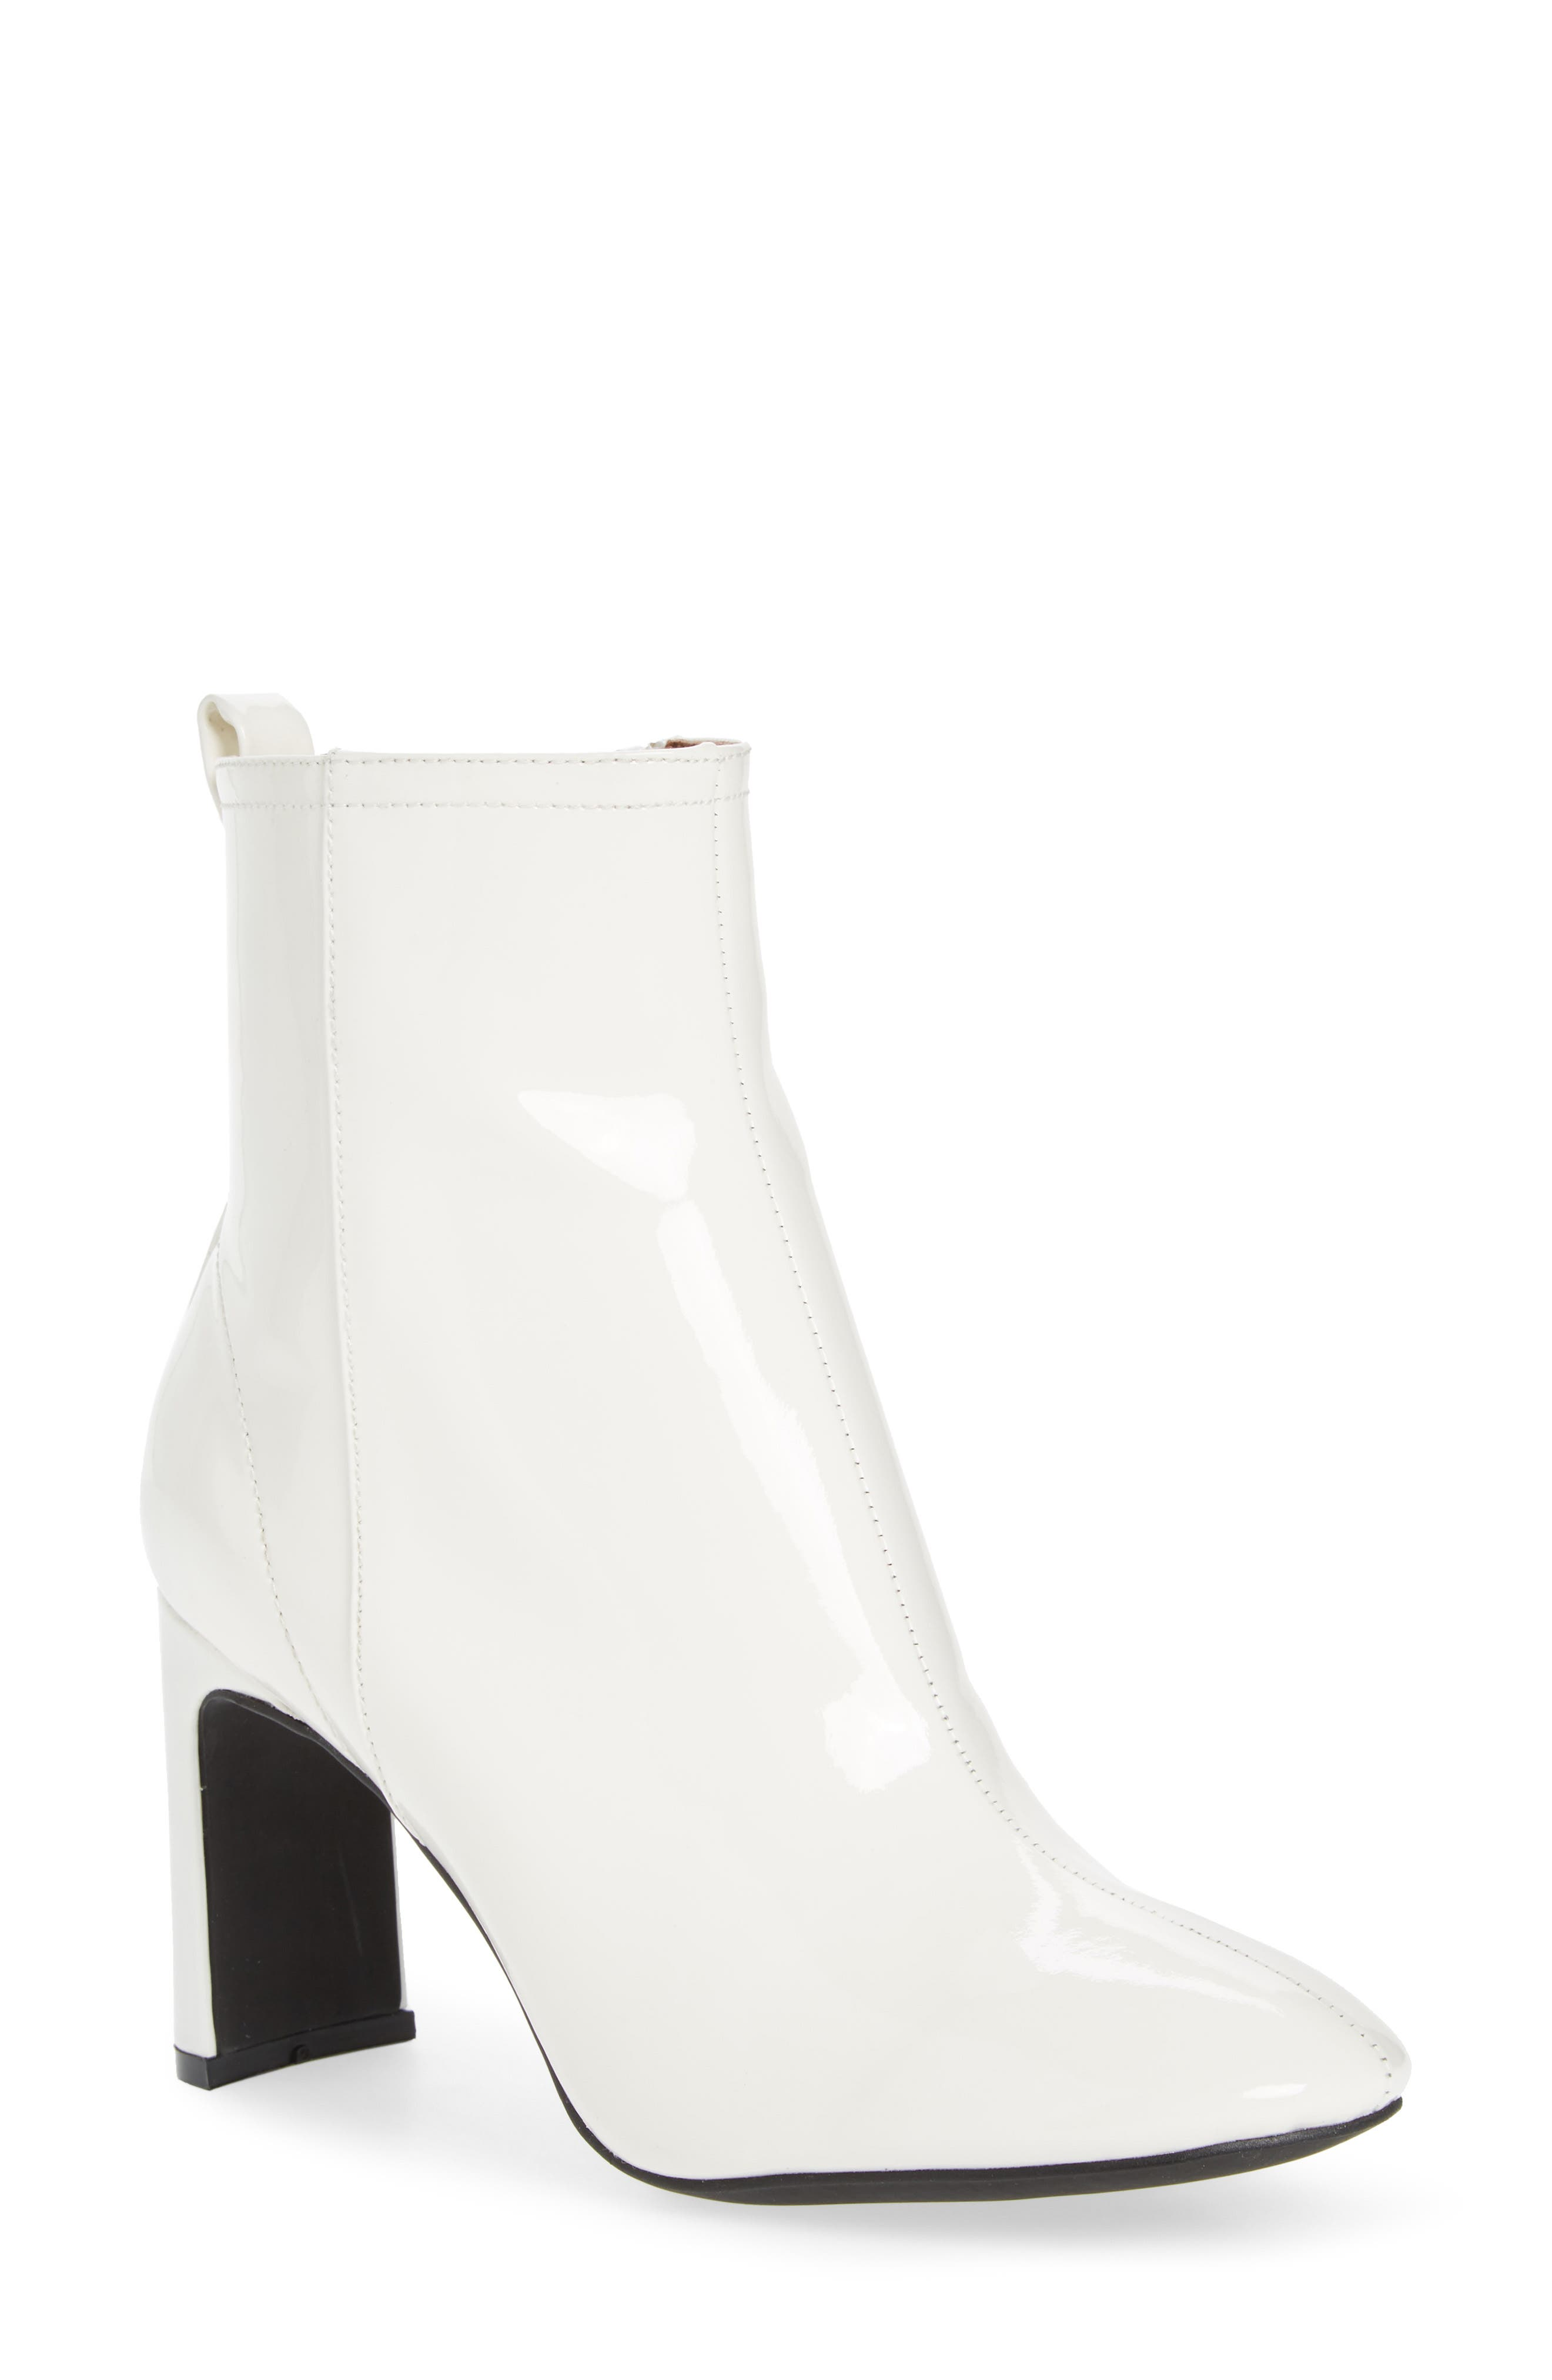 Chapel Curved Heel Bootie,                             Main thumbnail 1, color,                             White Patent Leather